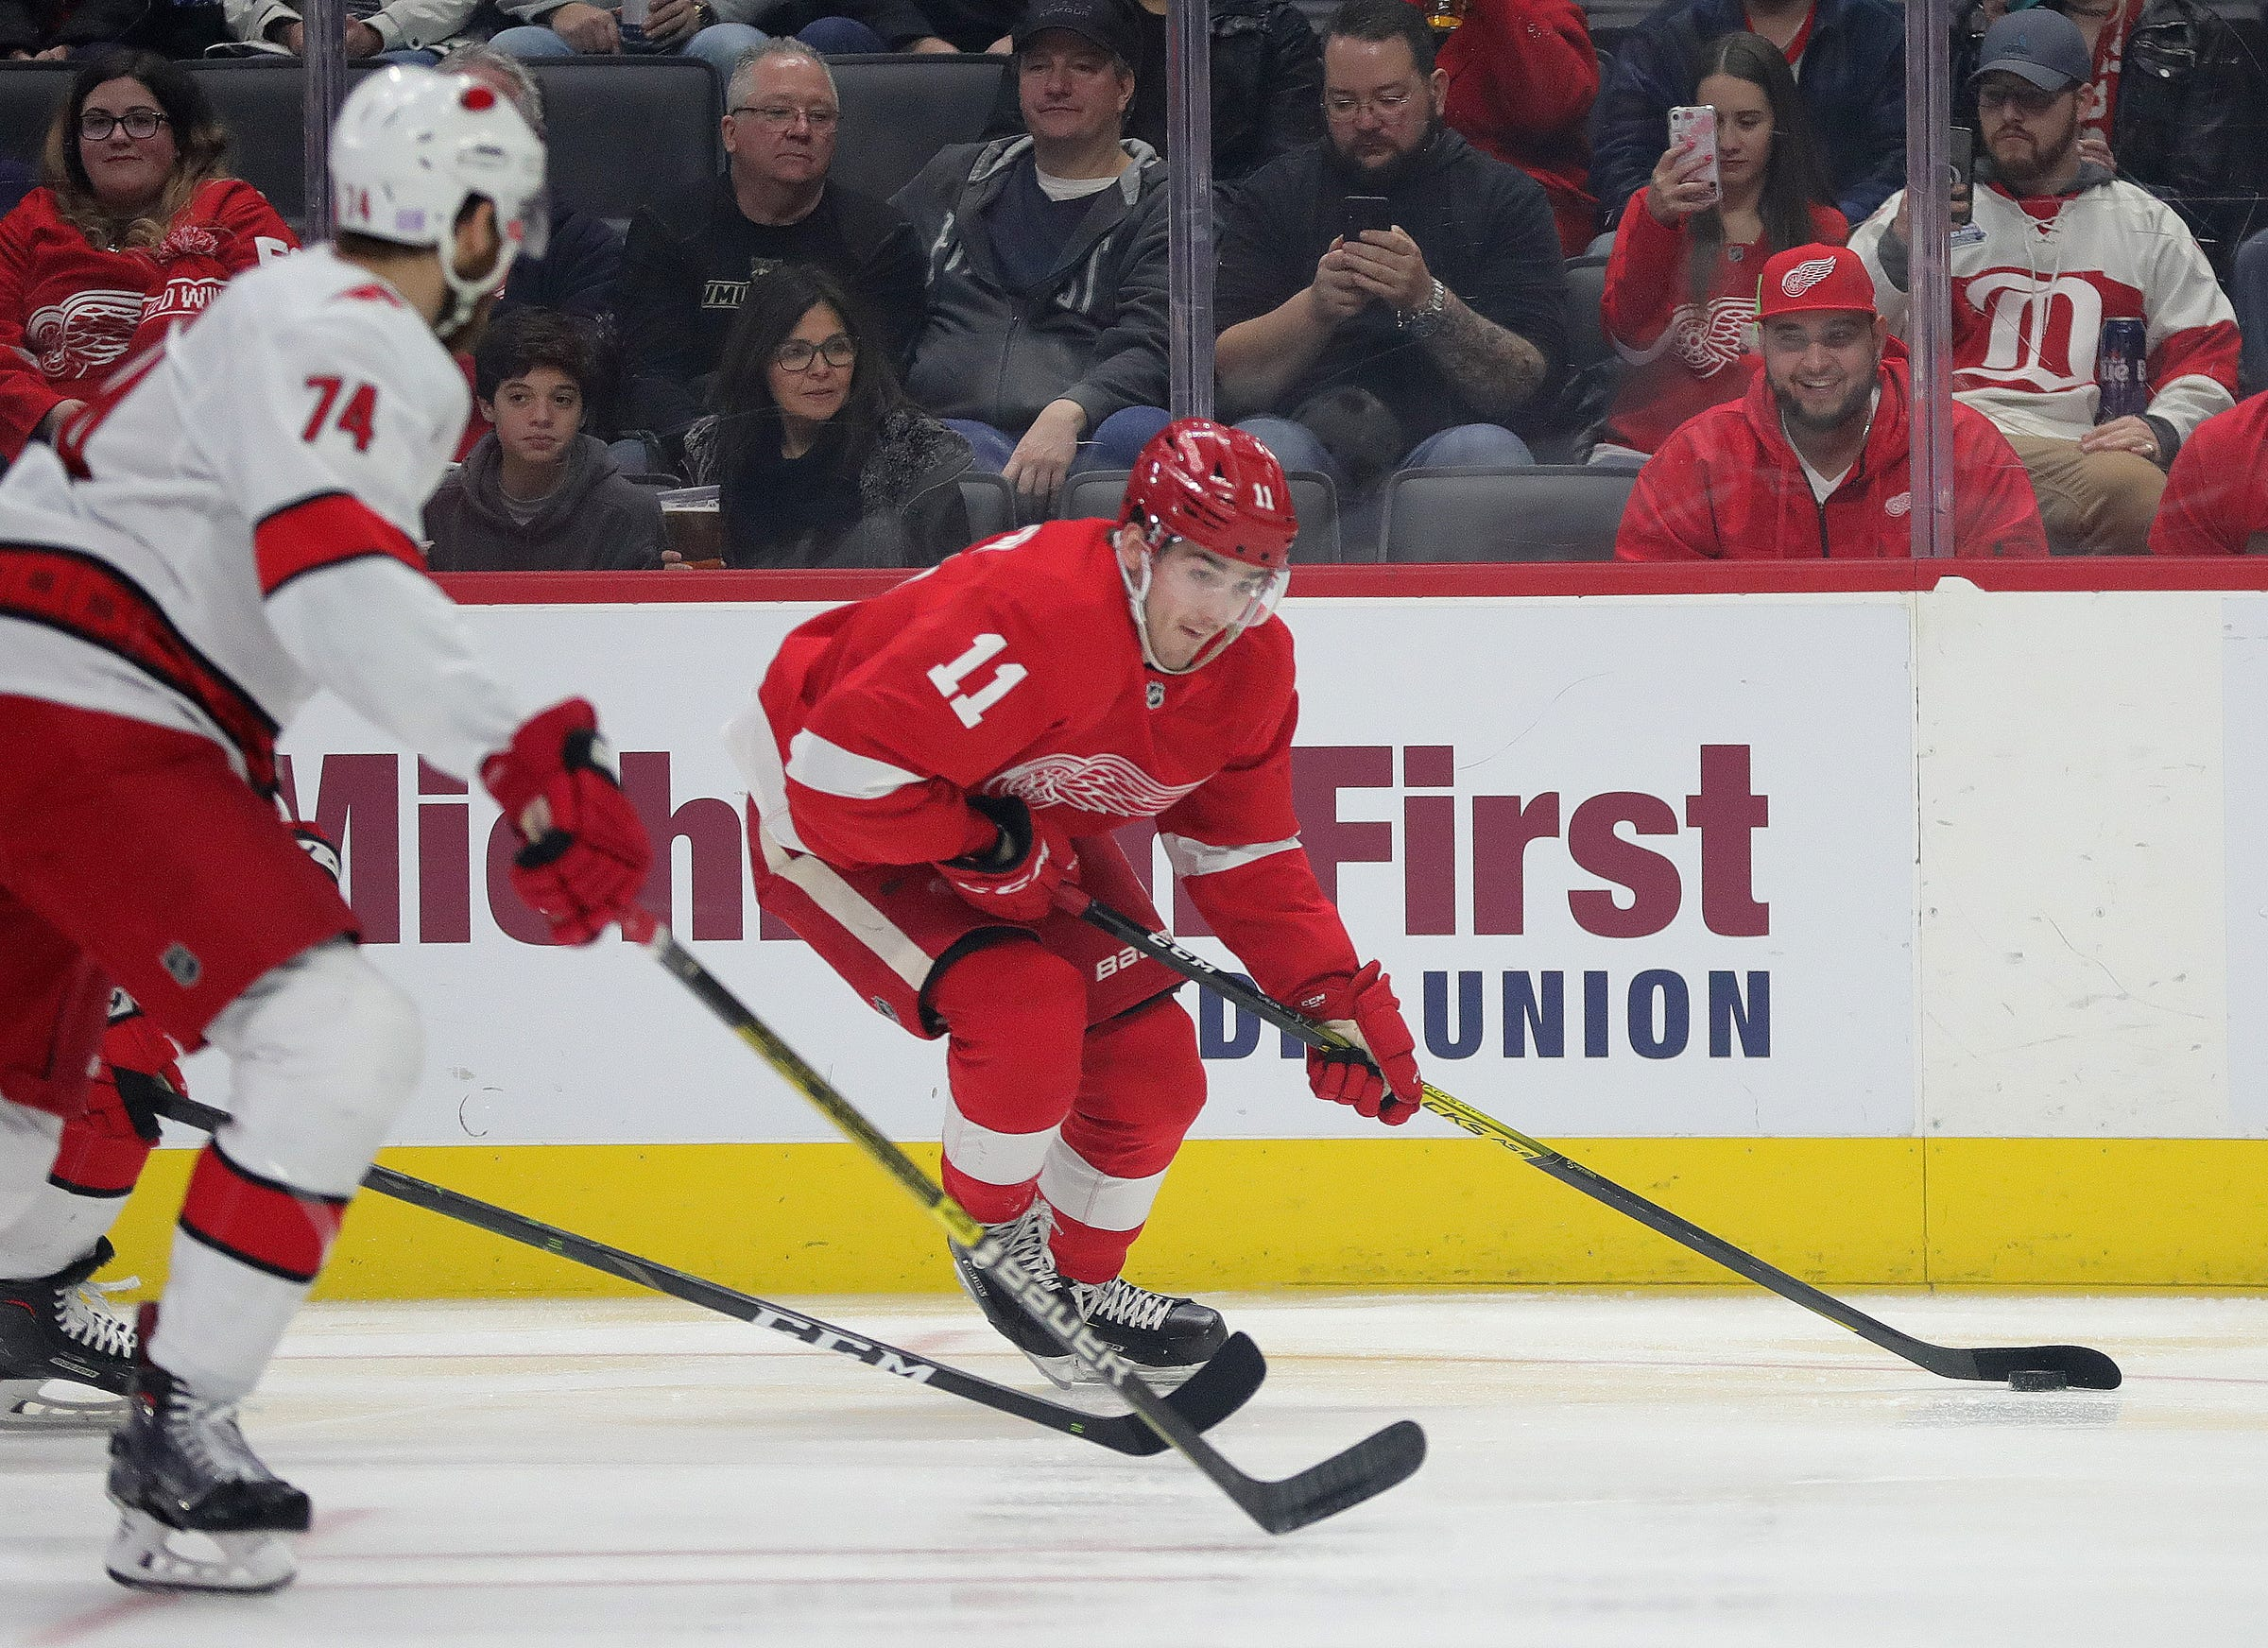 Detroit Red Wings' Filip Zadina flashes improvement: 'His 1st period was very good'